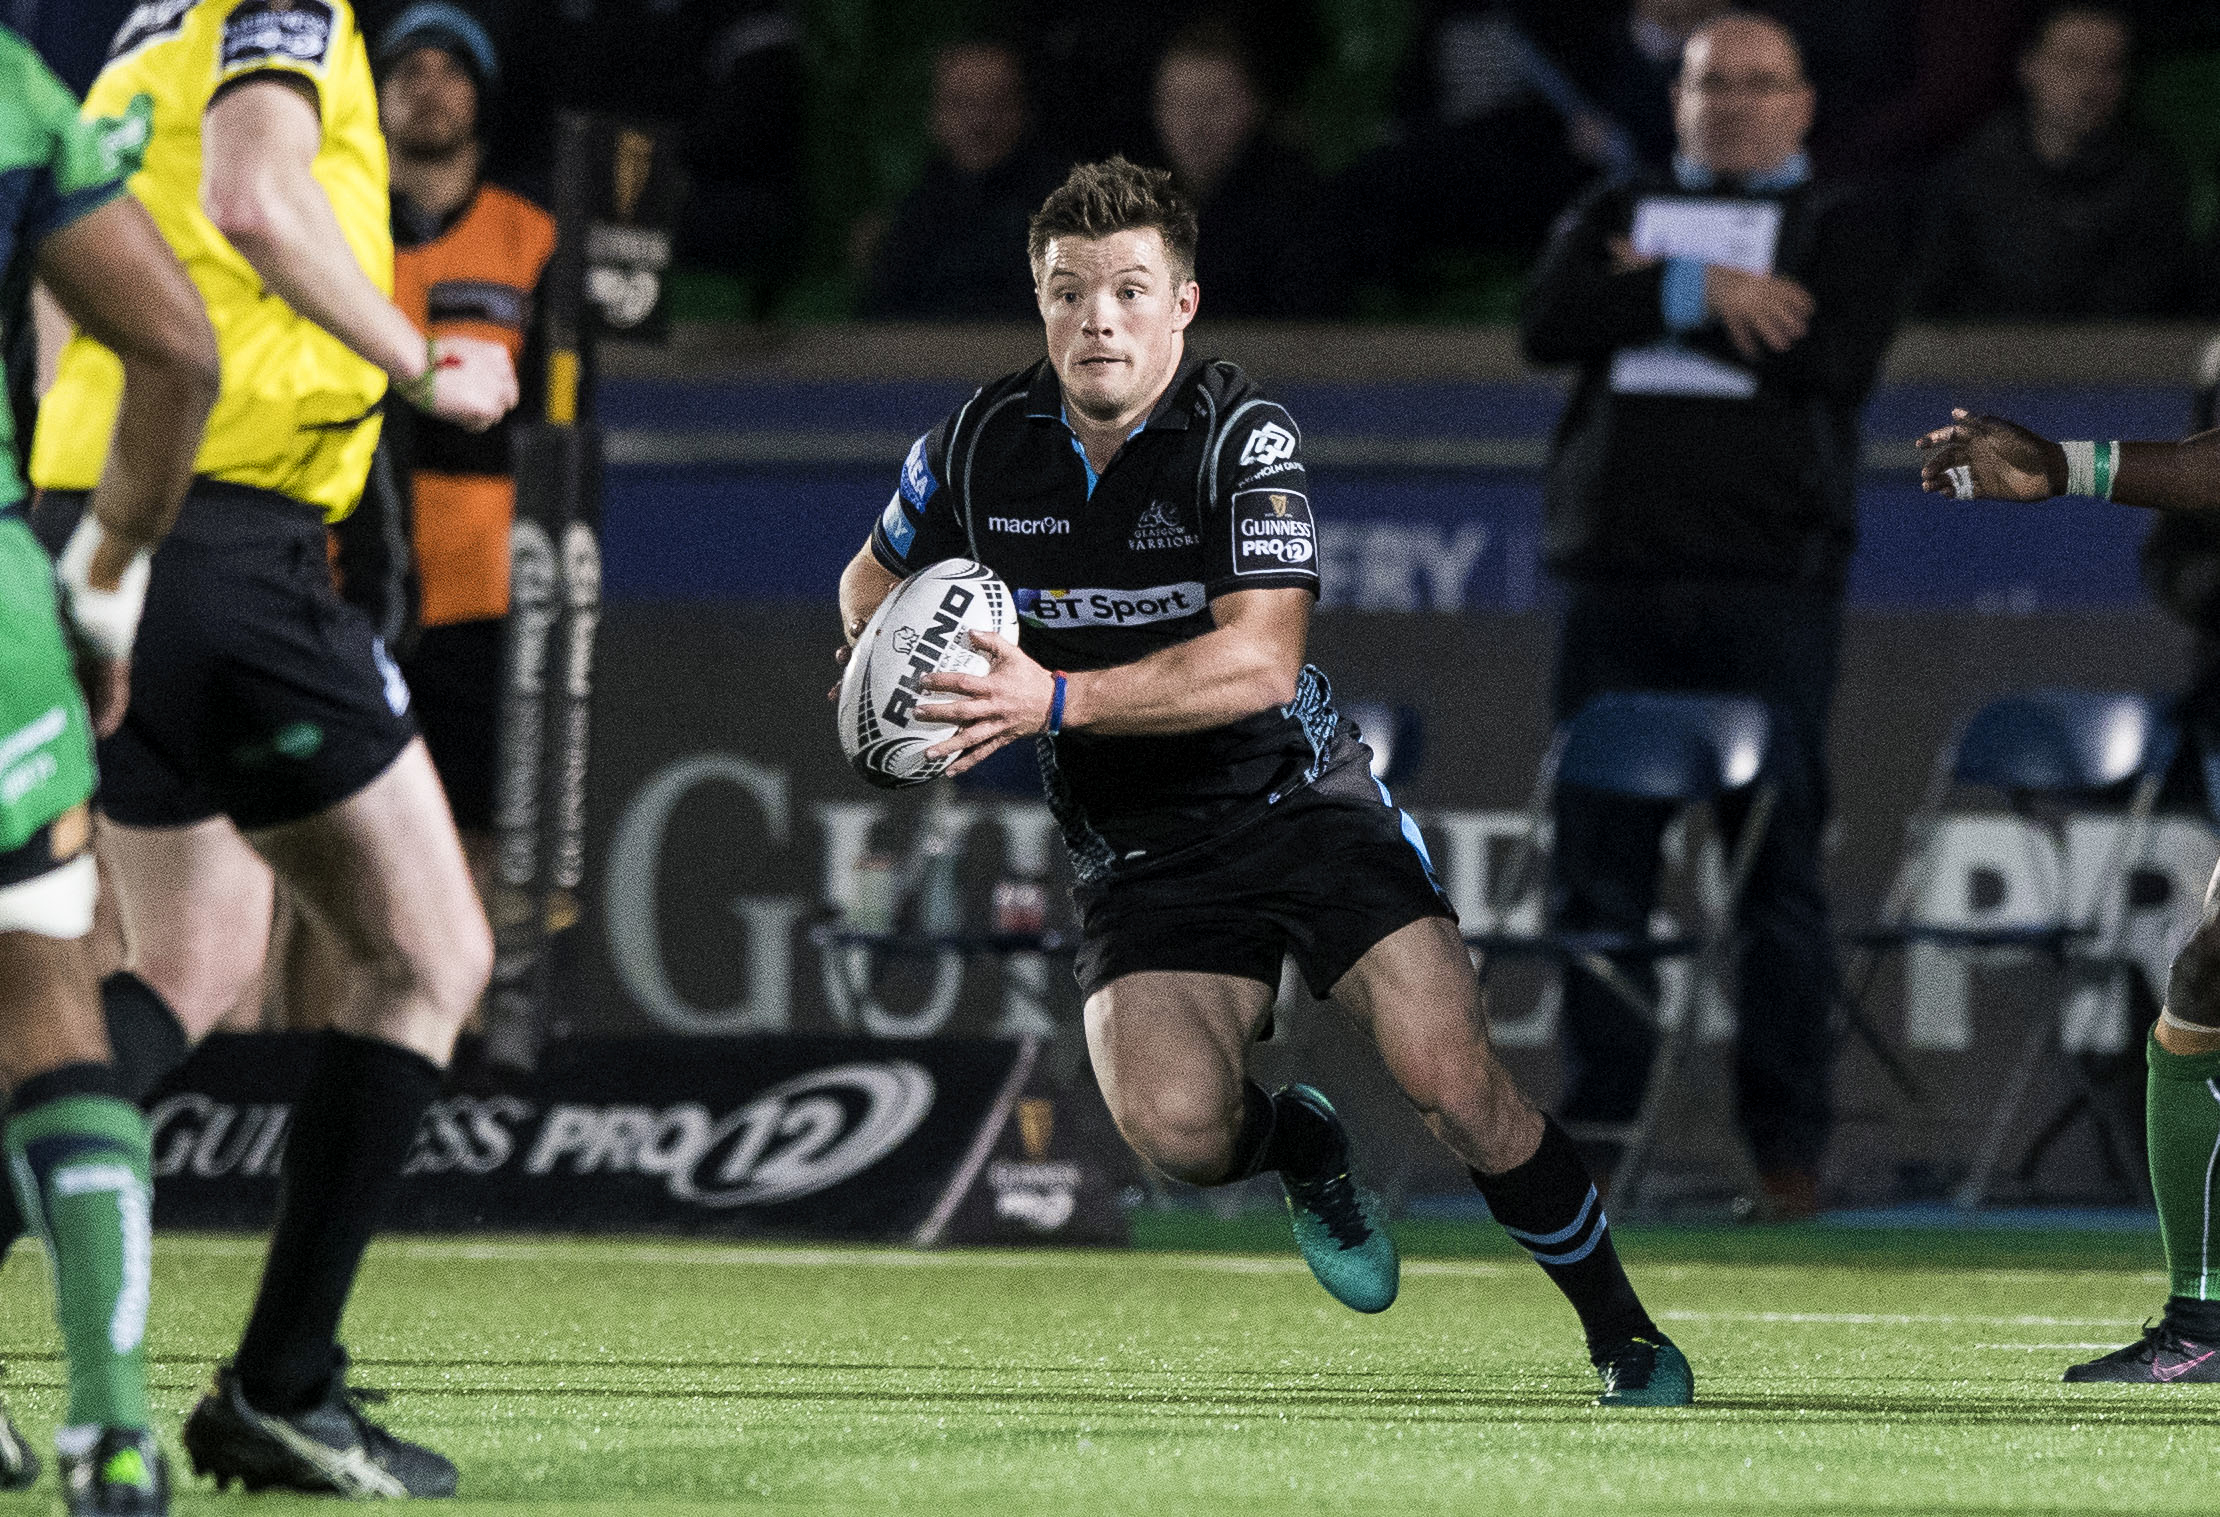 George Horne in action for Glasgow Warriors.